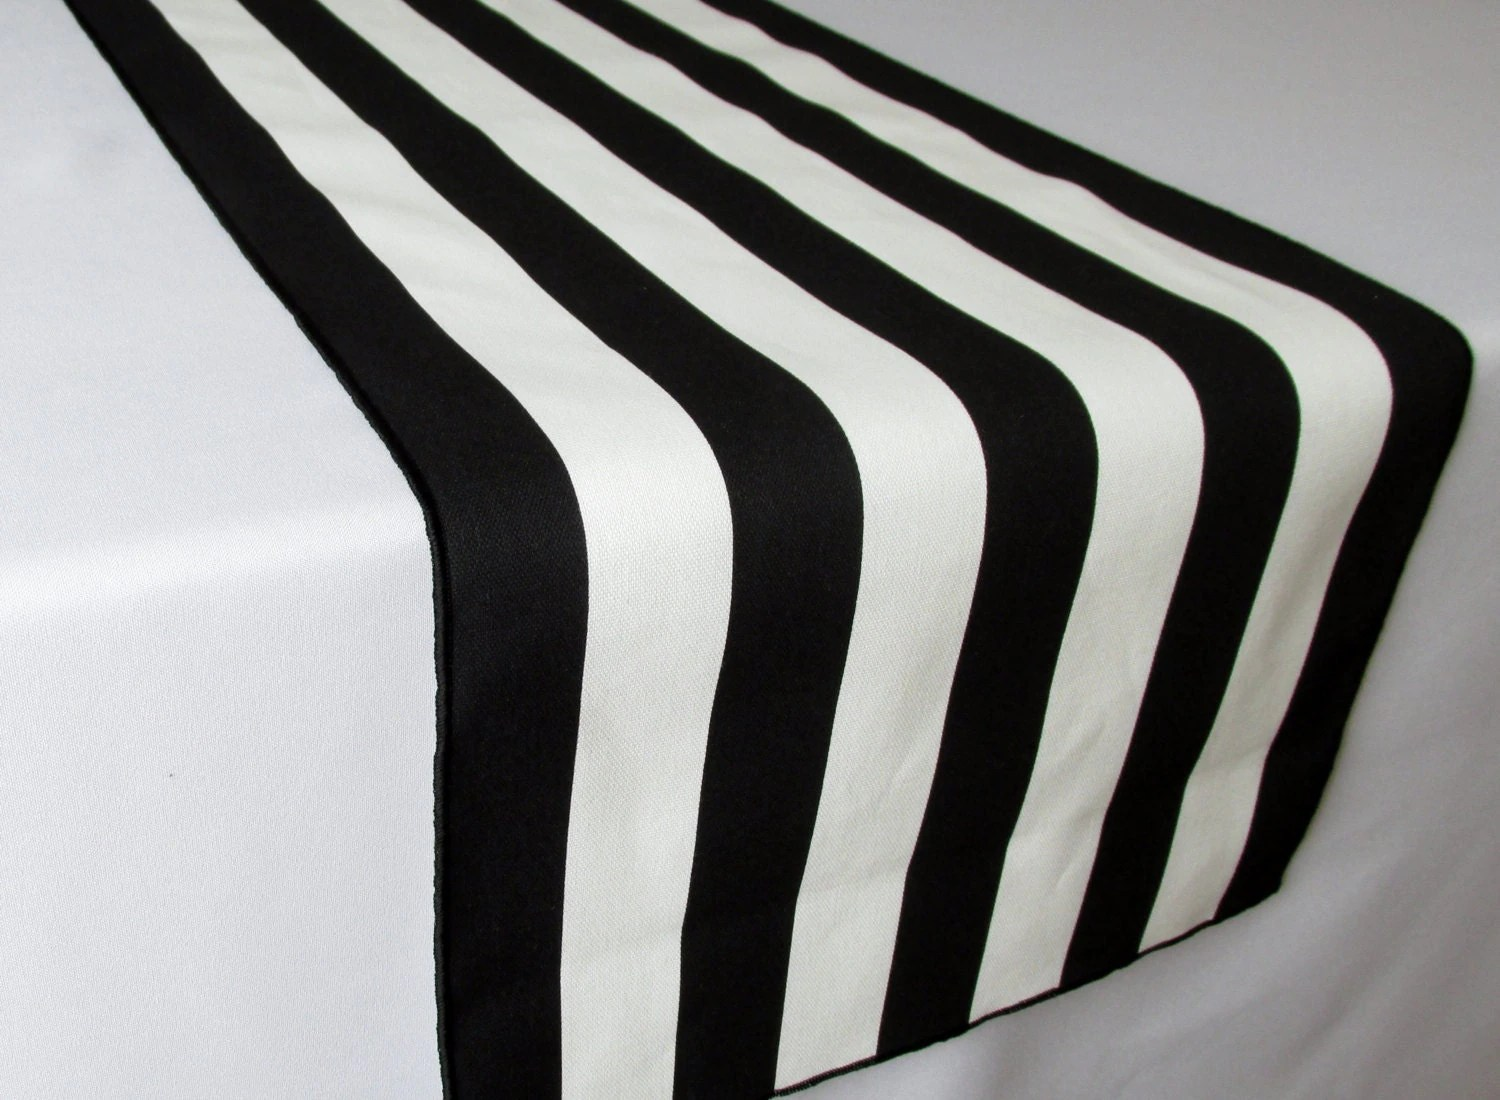 wedding table runner wedding table runners Black and White Striped Table Runner Wedding Table Runner black edge Select A Size READY TO SHIP